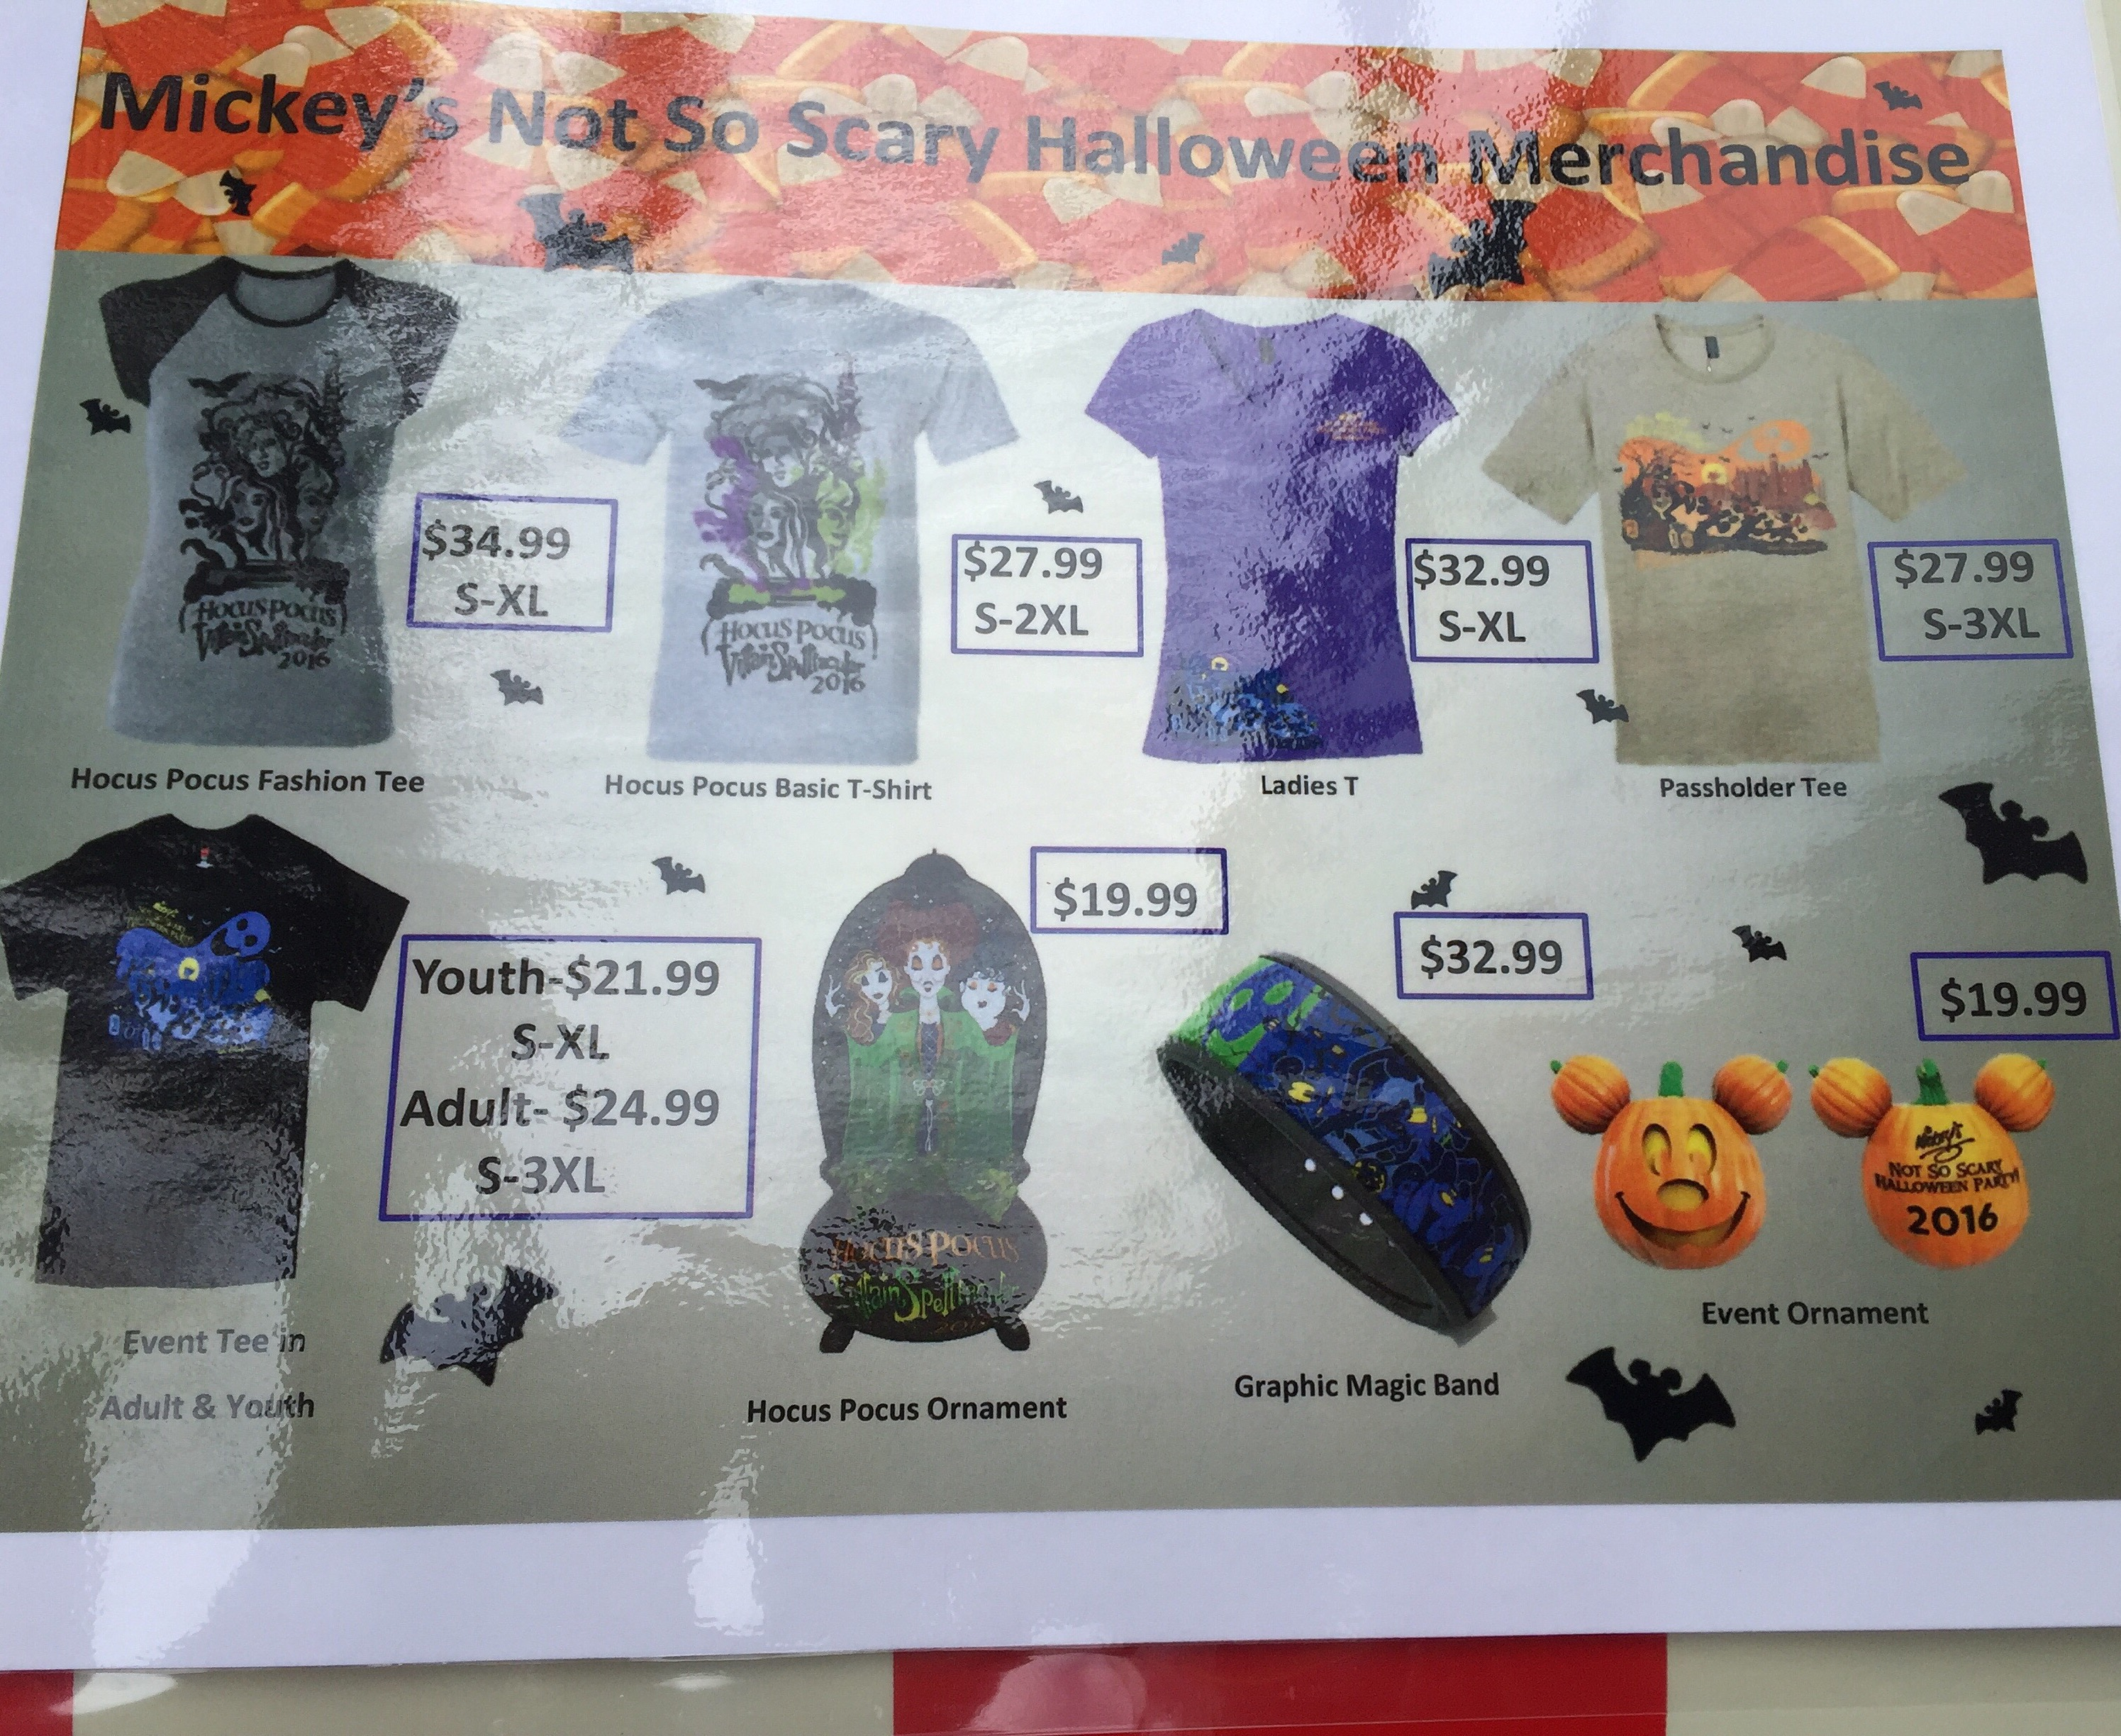 Mickey's Not So Scary Halloween Party 2016 Merchandise